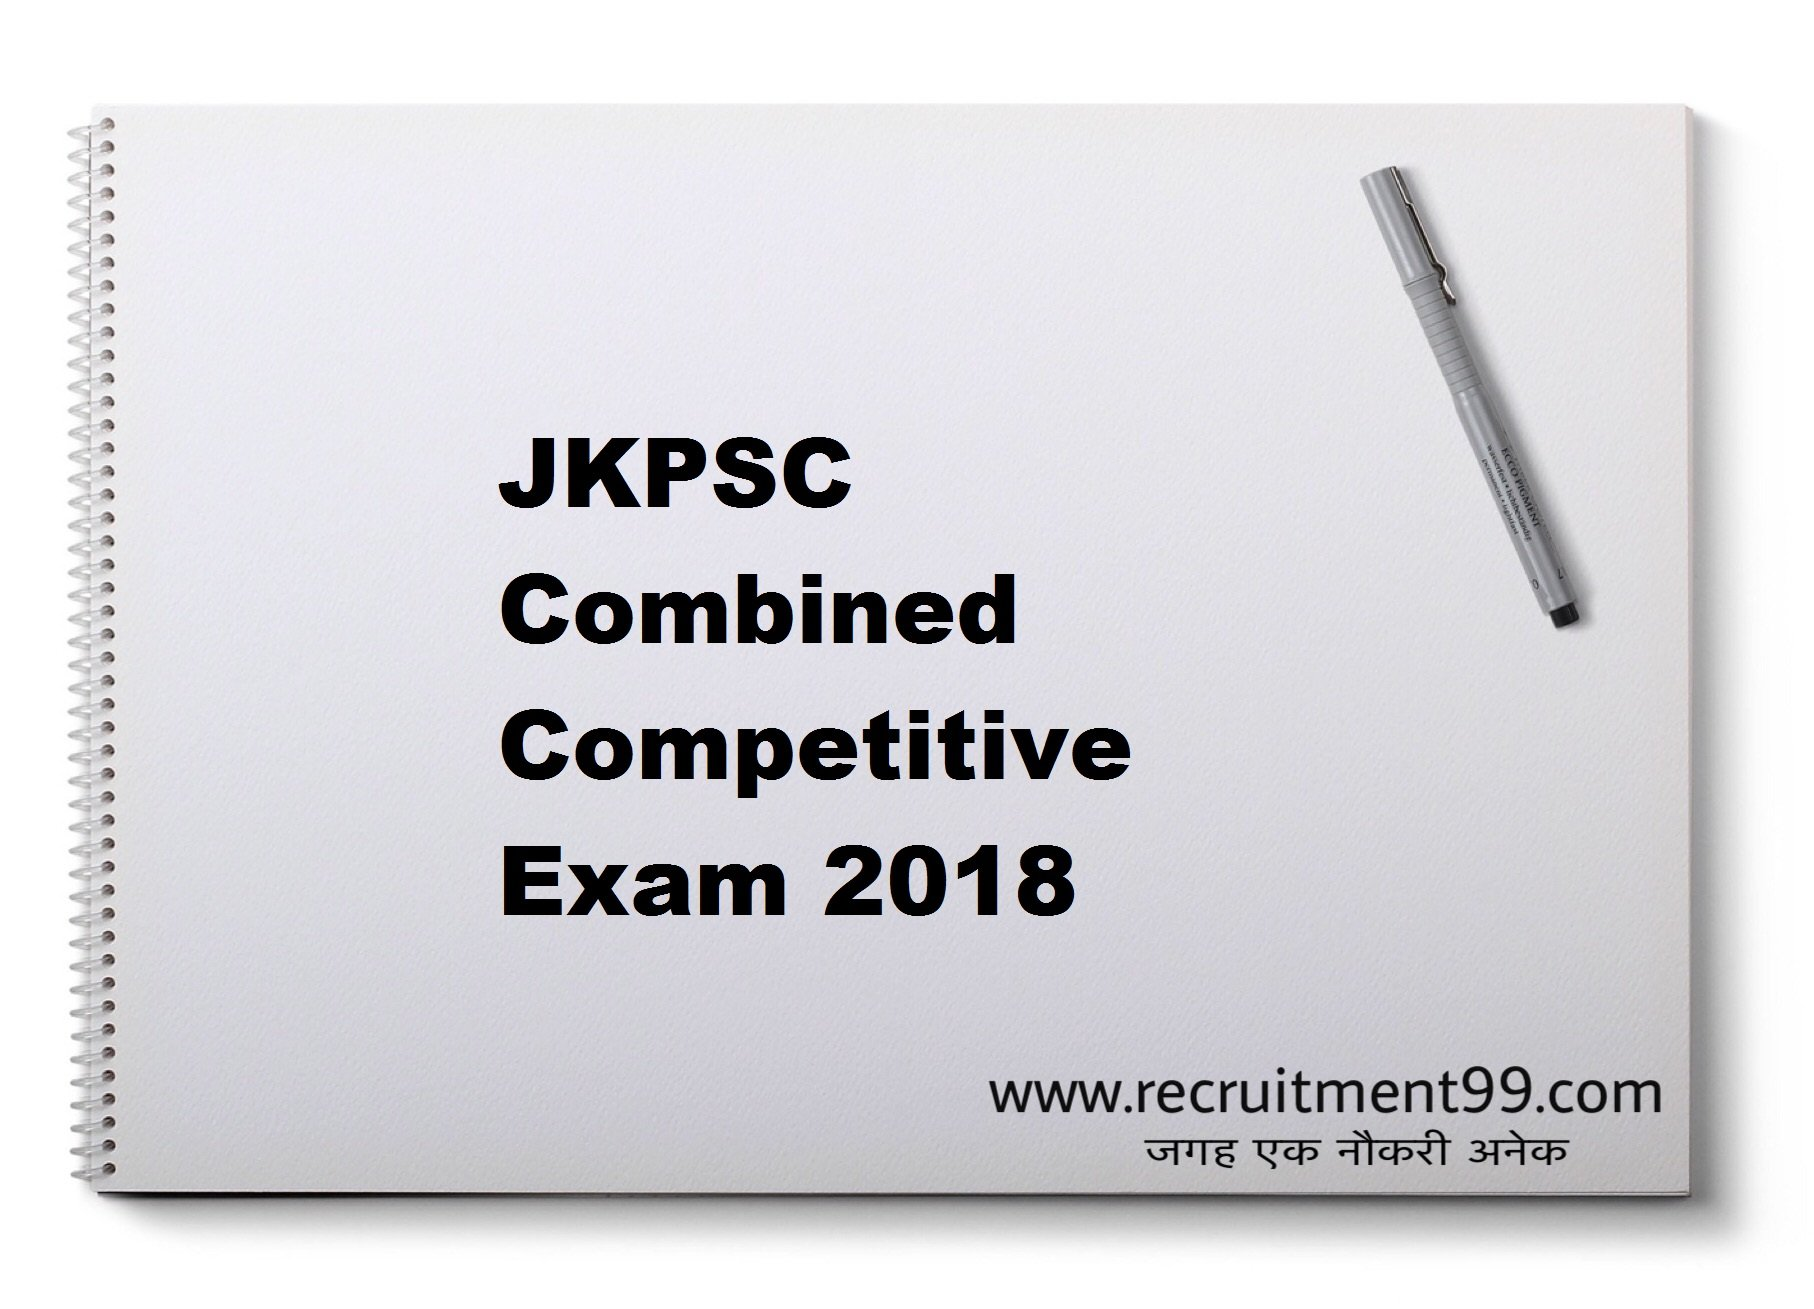 JKPSC Combined Competitive Exam Recruitment Admit Card Result 2018